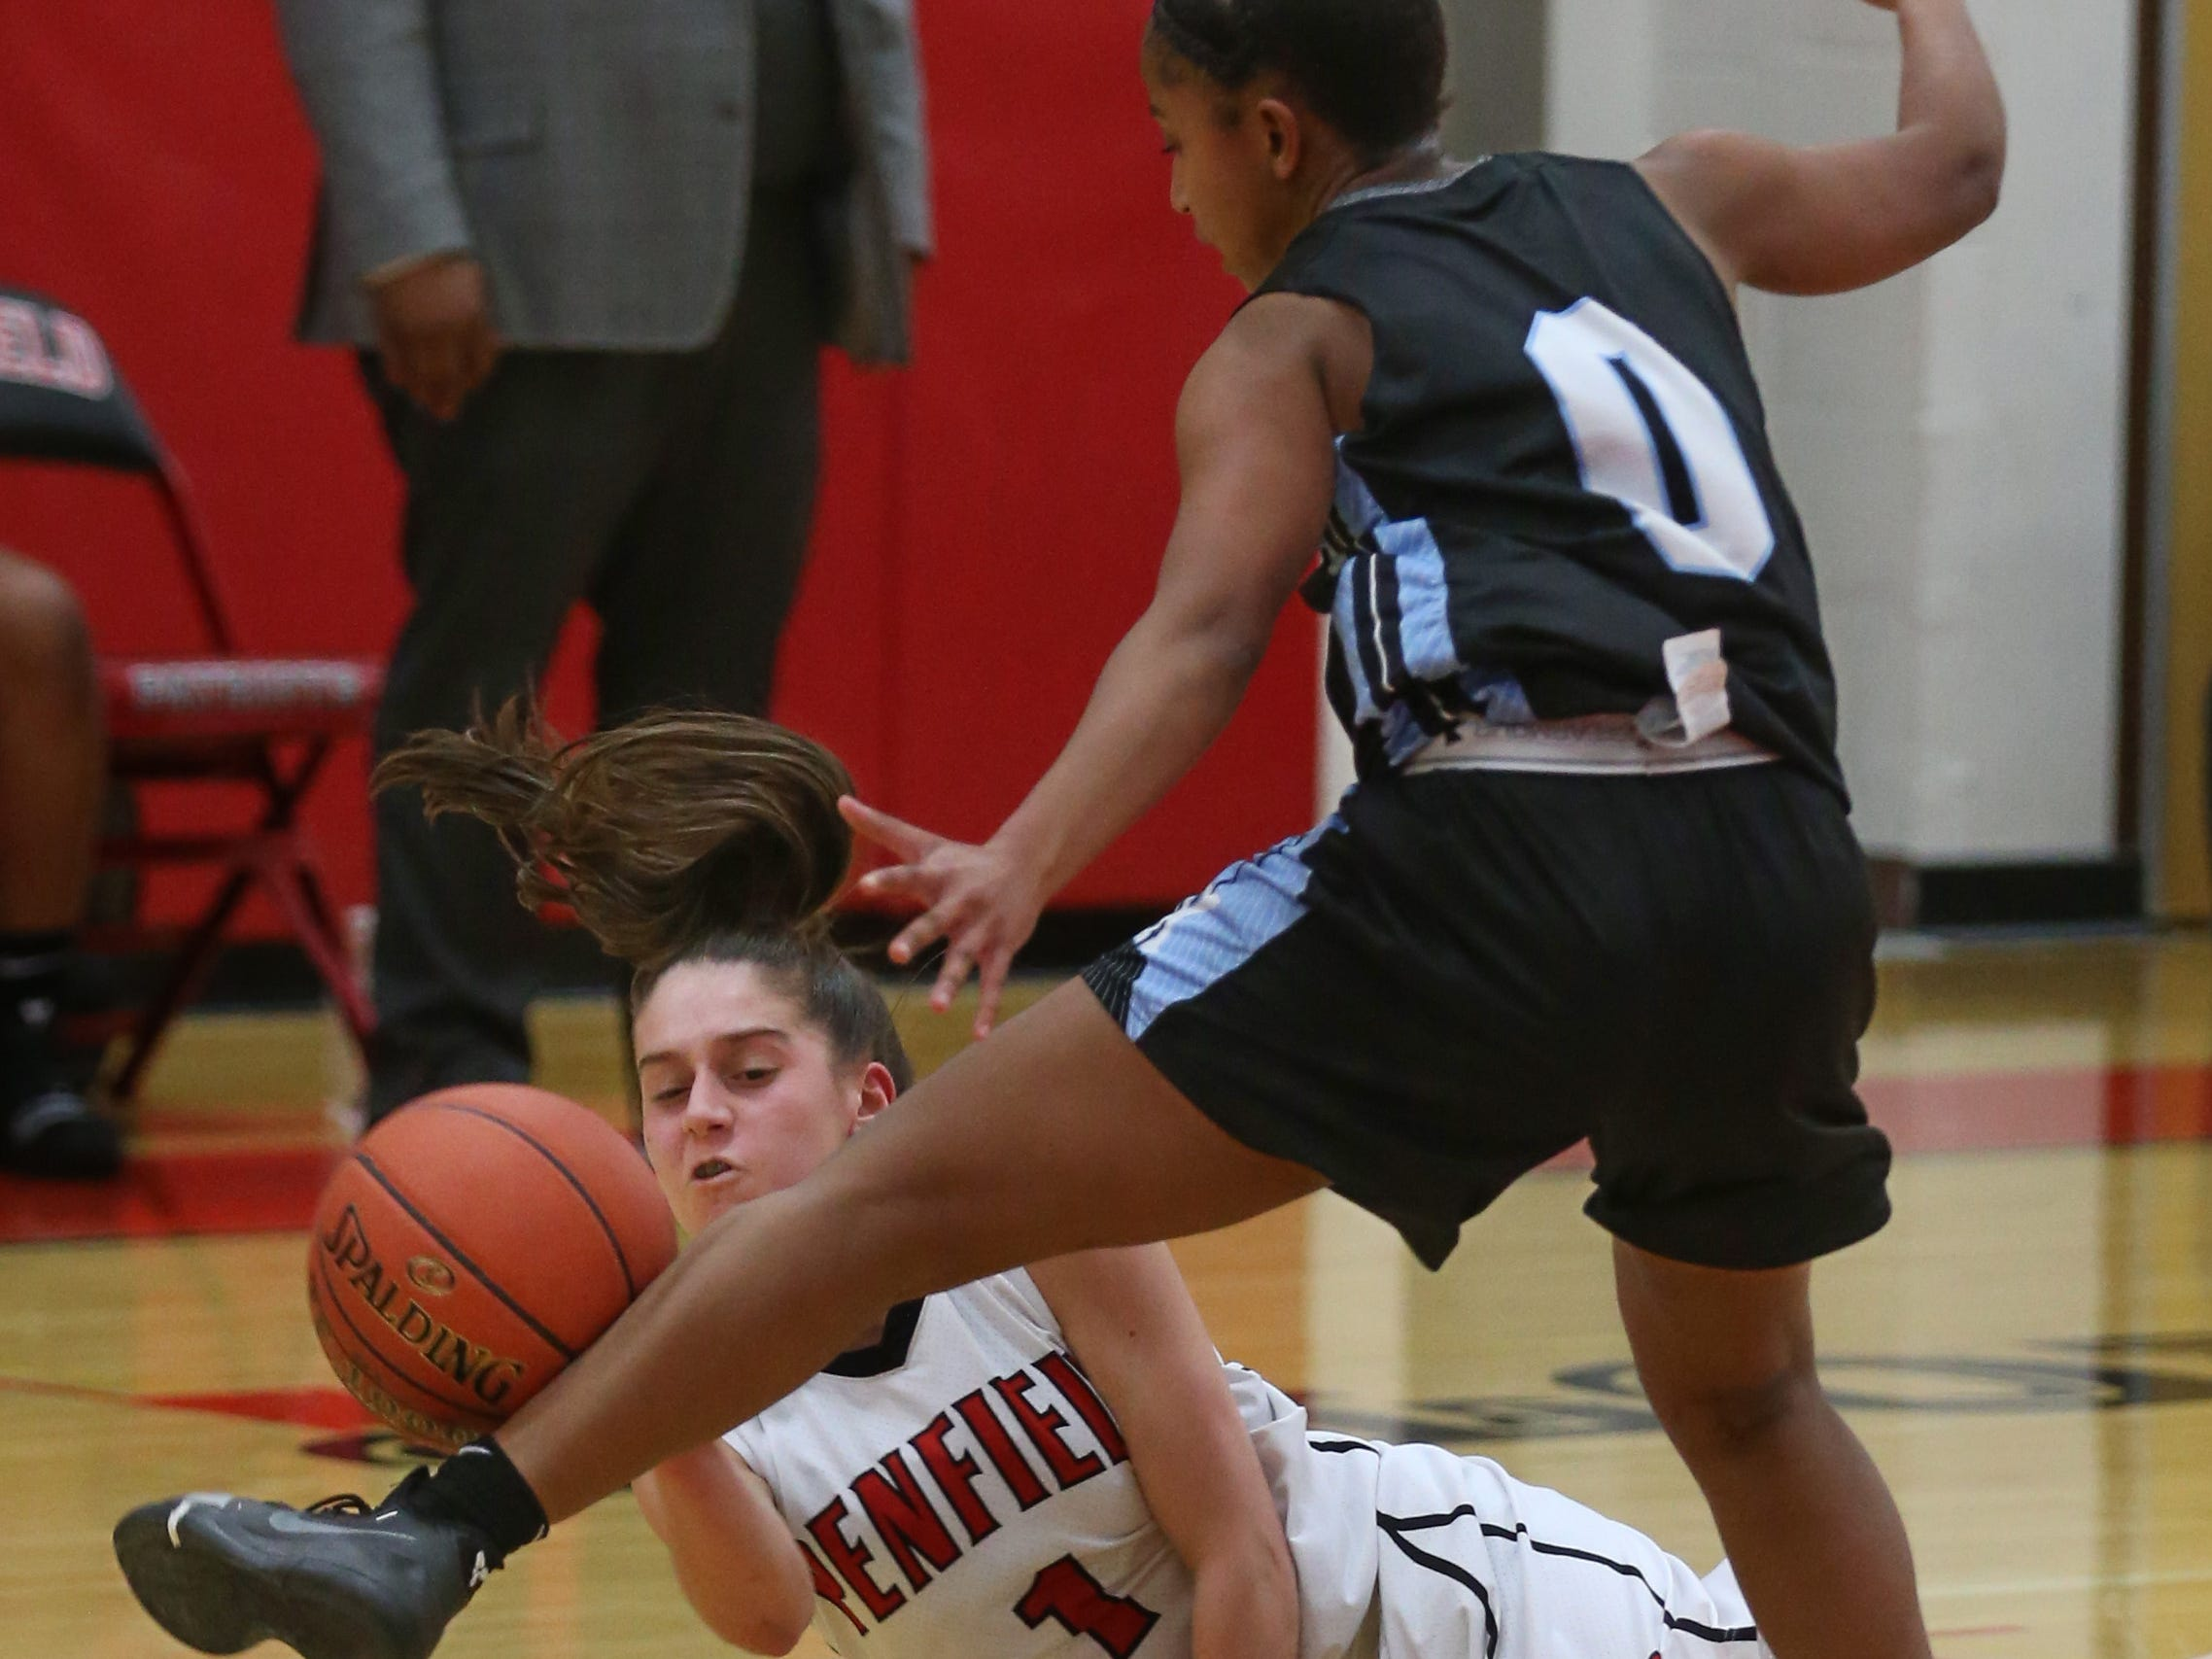 Penfield's Baylee Teal, bottom, steals the ball and has it knocked out of bounds off the leg of Kearney's Marianna Freeman.